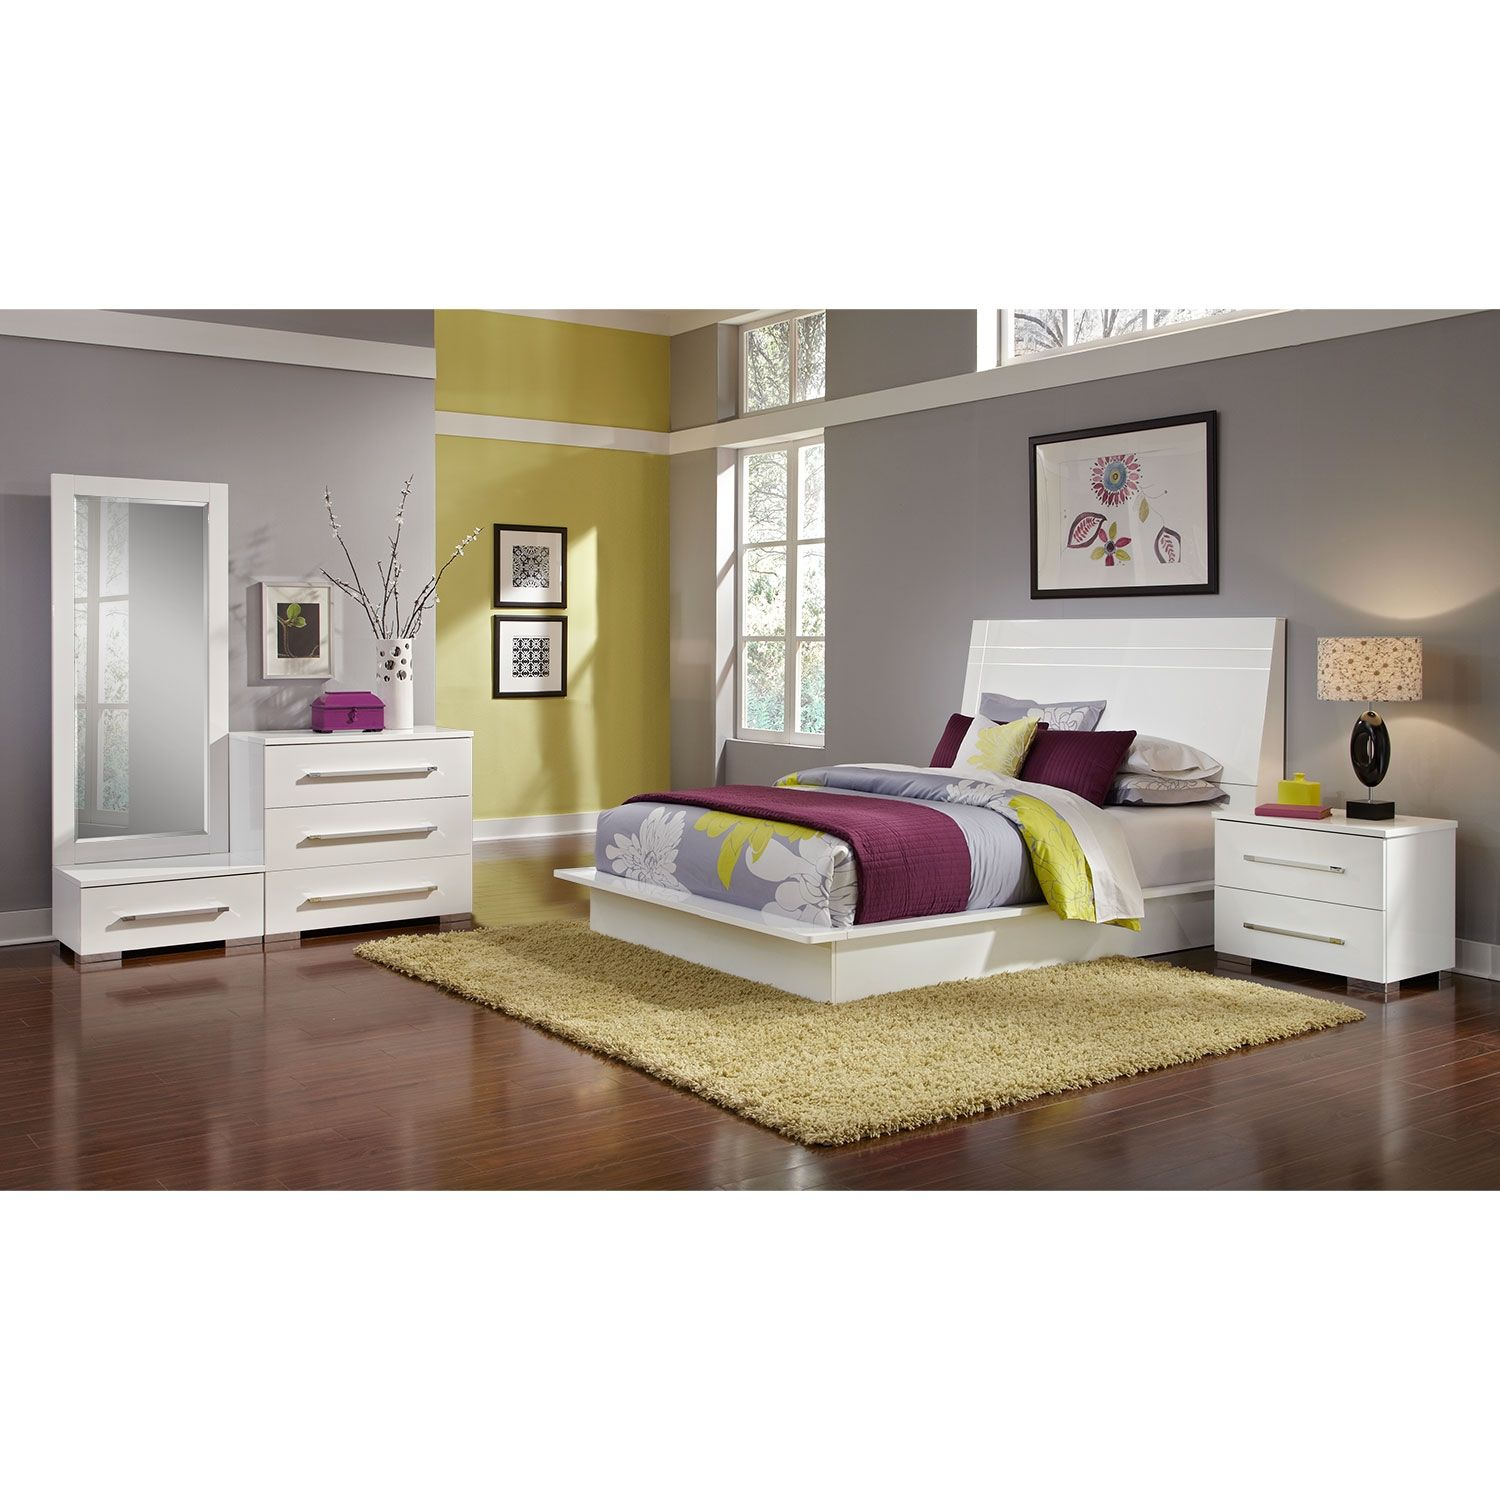 From Rome With Love The Dimora White Ii Collection Brings All The Class Of Italian Style Furnishings Furniture Bedroom Furniture For Sale Value City Furniture